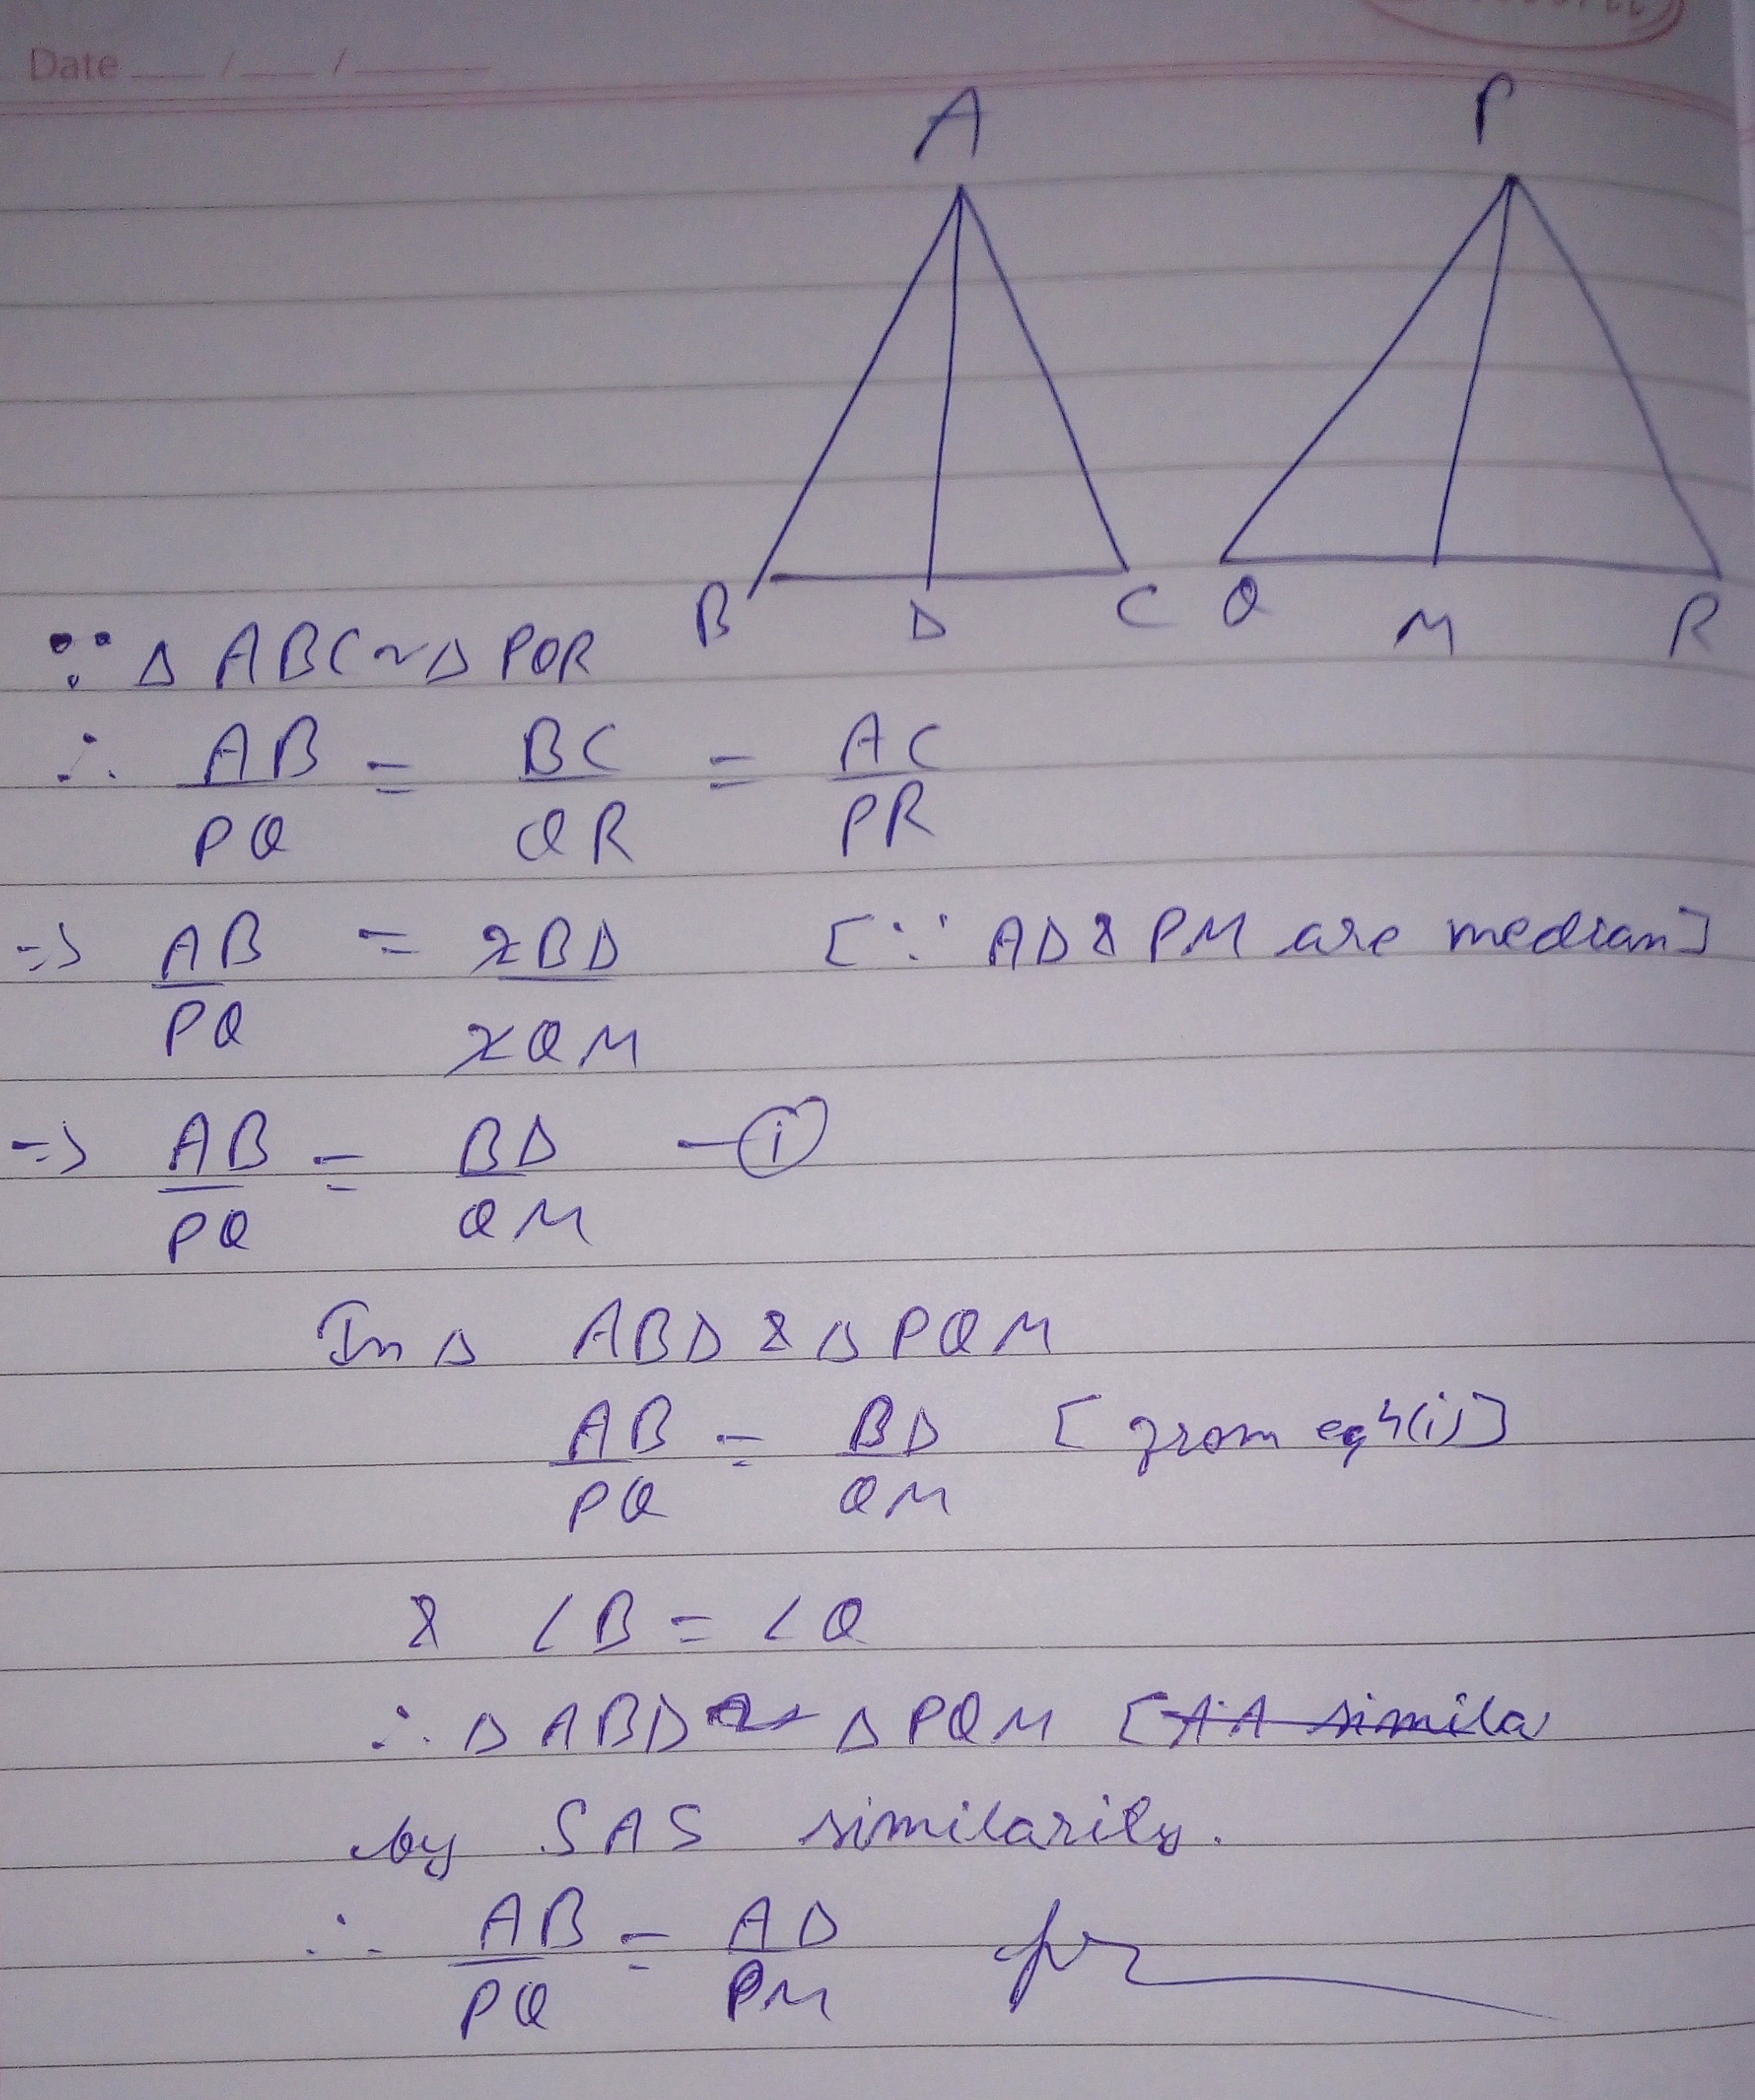 If Ad And Pm Are Medians Of Triangles Abc And Pqr